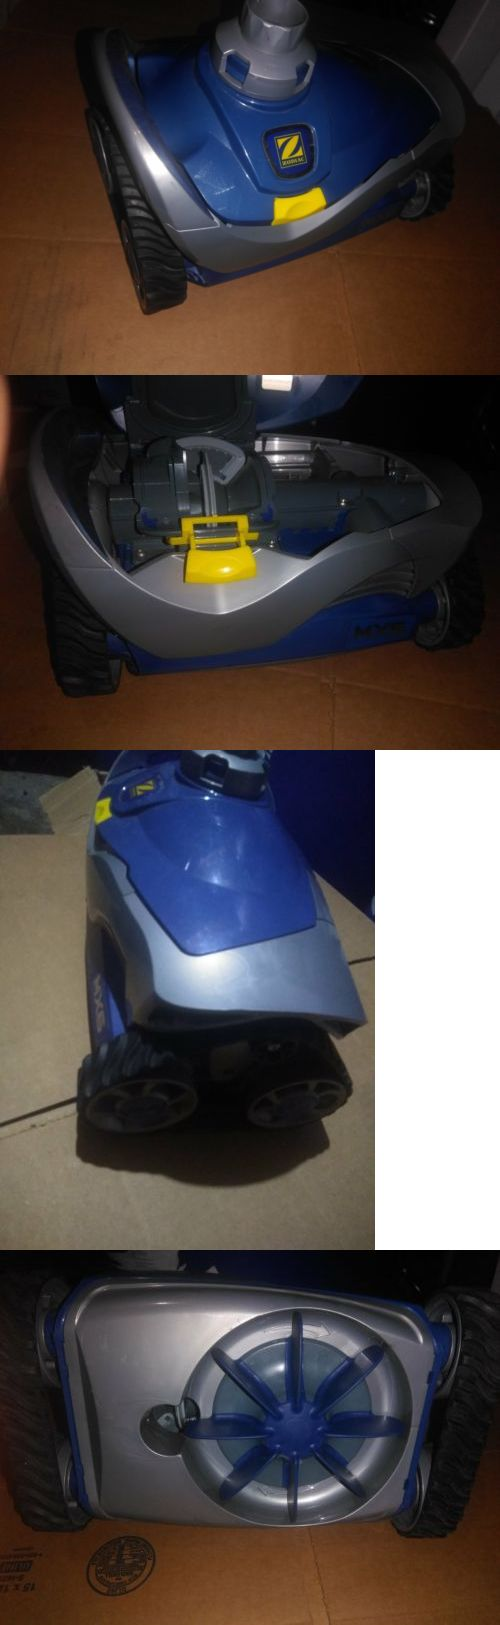 Pool Cleaners and Vacuums 181063: Head Unit Only Zodiac Mx6 Swimming ...